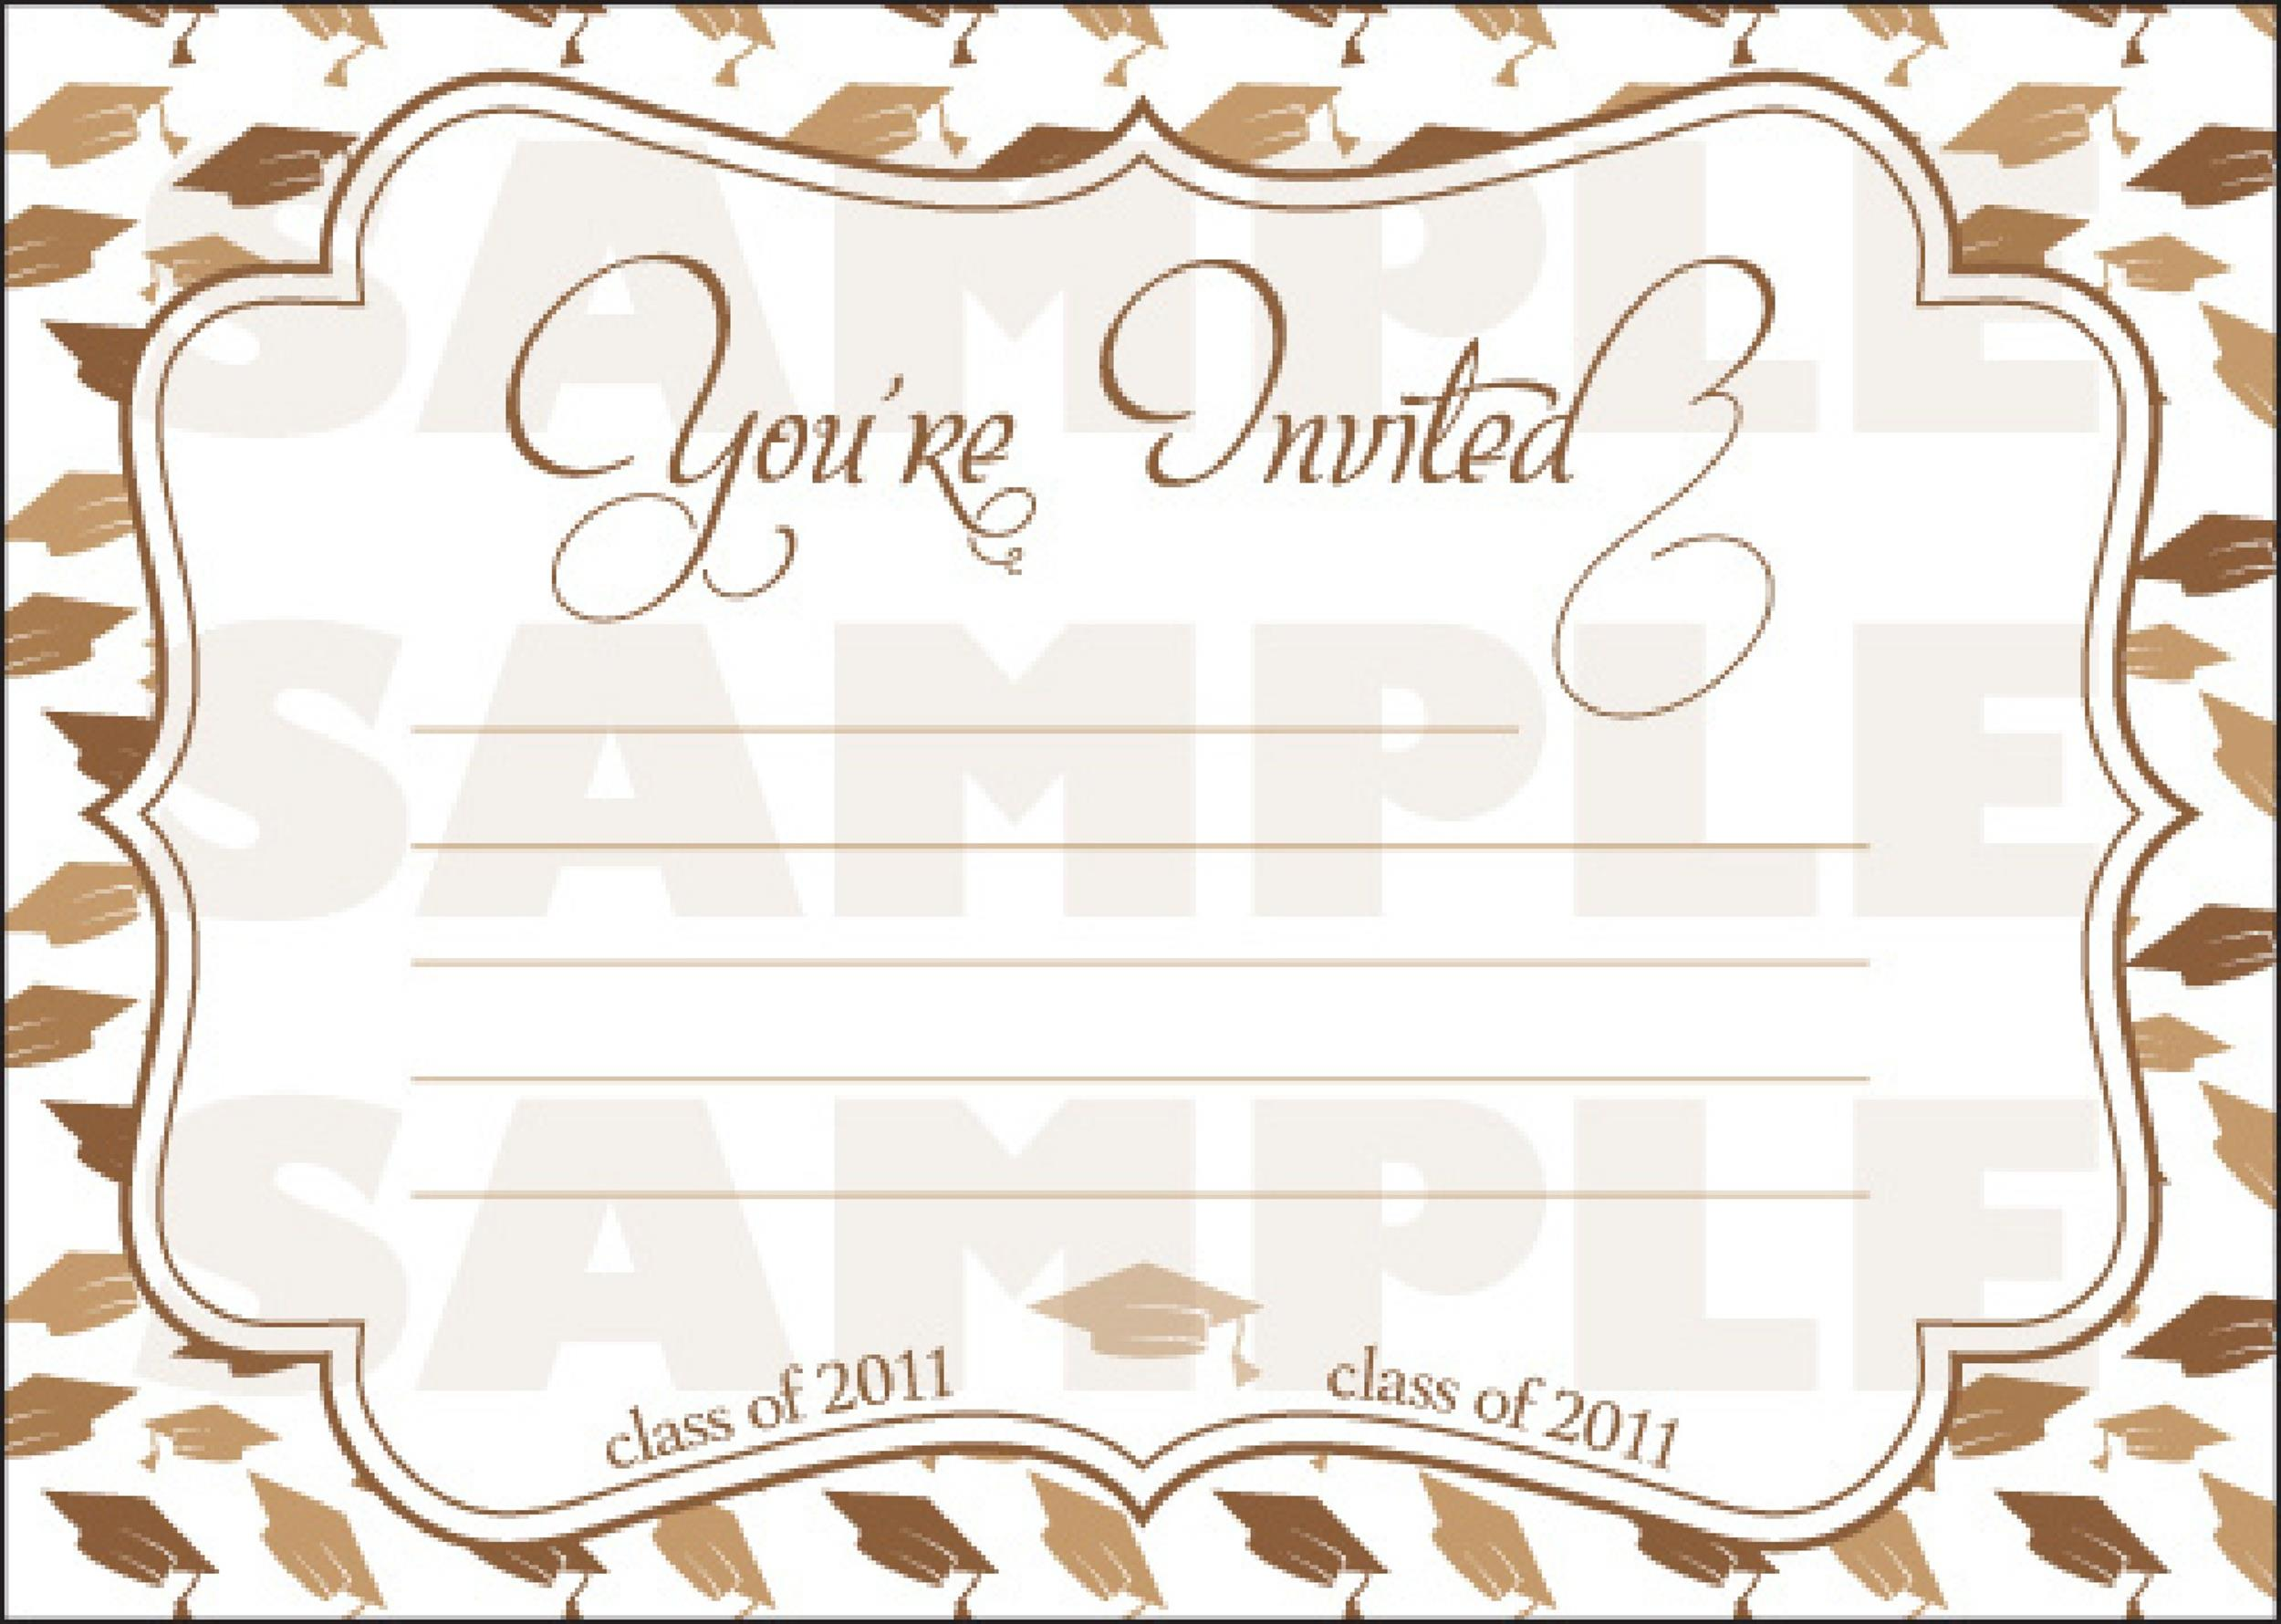 Printable graduation invitation templates gallery for Graduation mortar board template